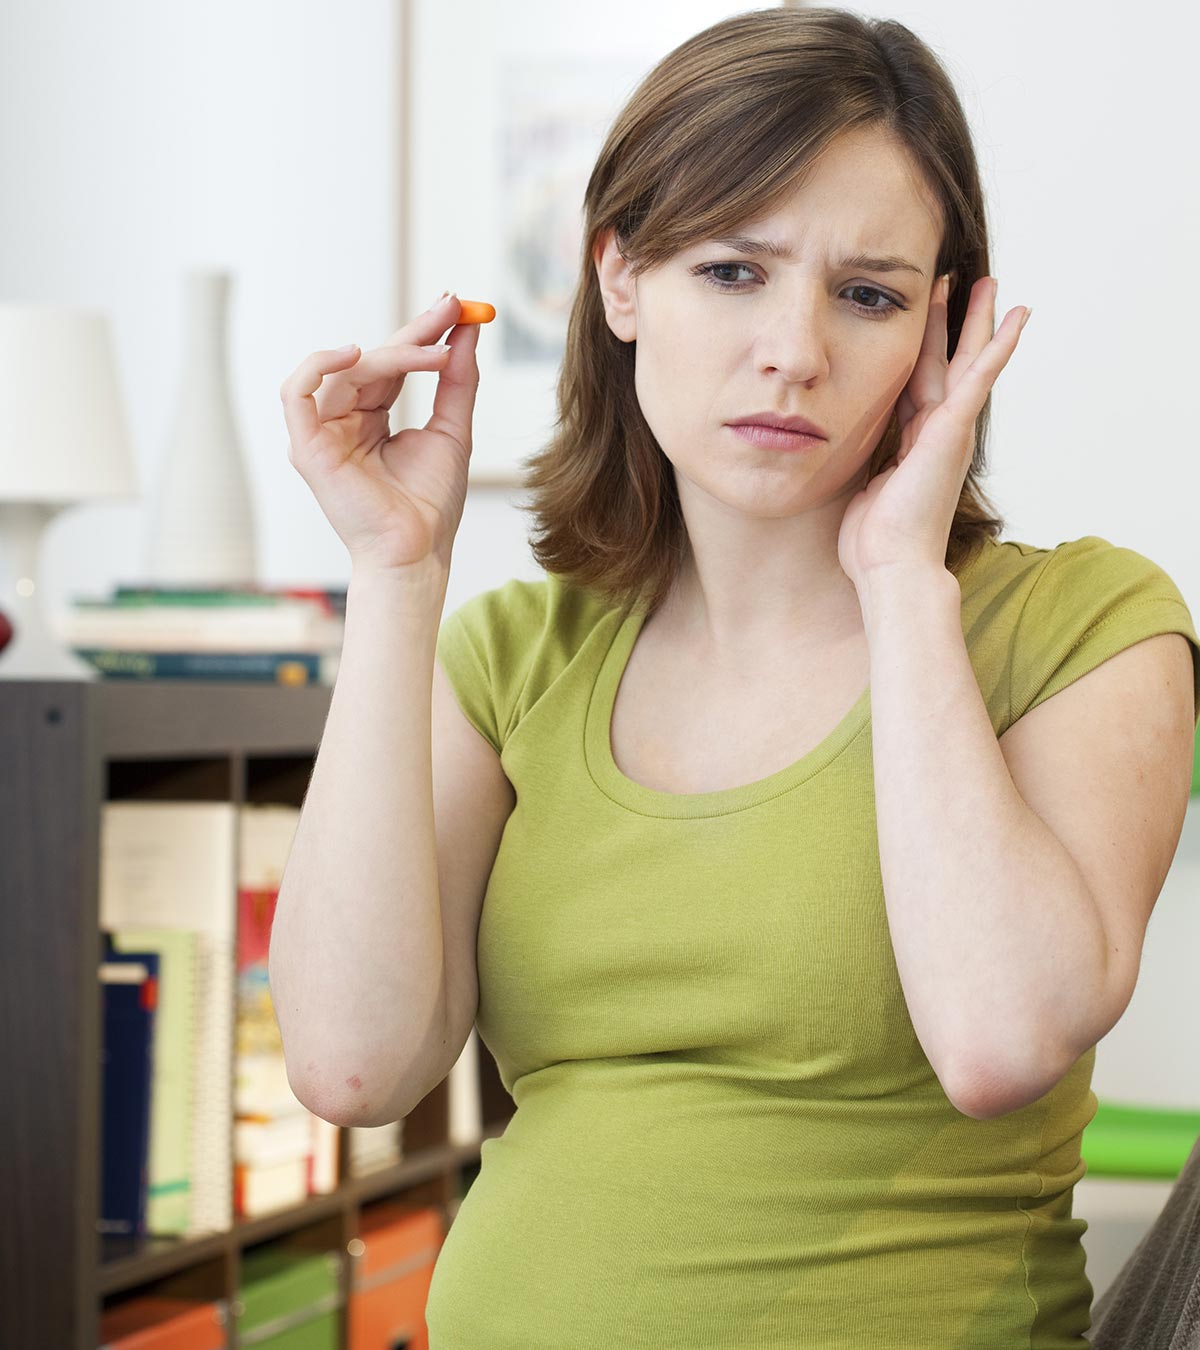 Loud Noises During Pregnancy - Everything You Need To Know